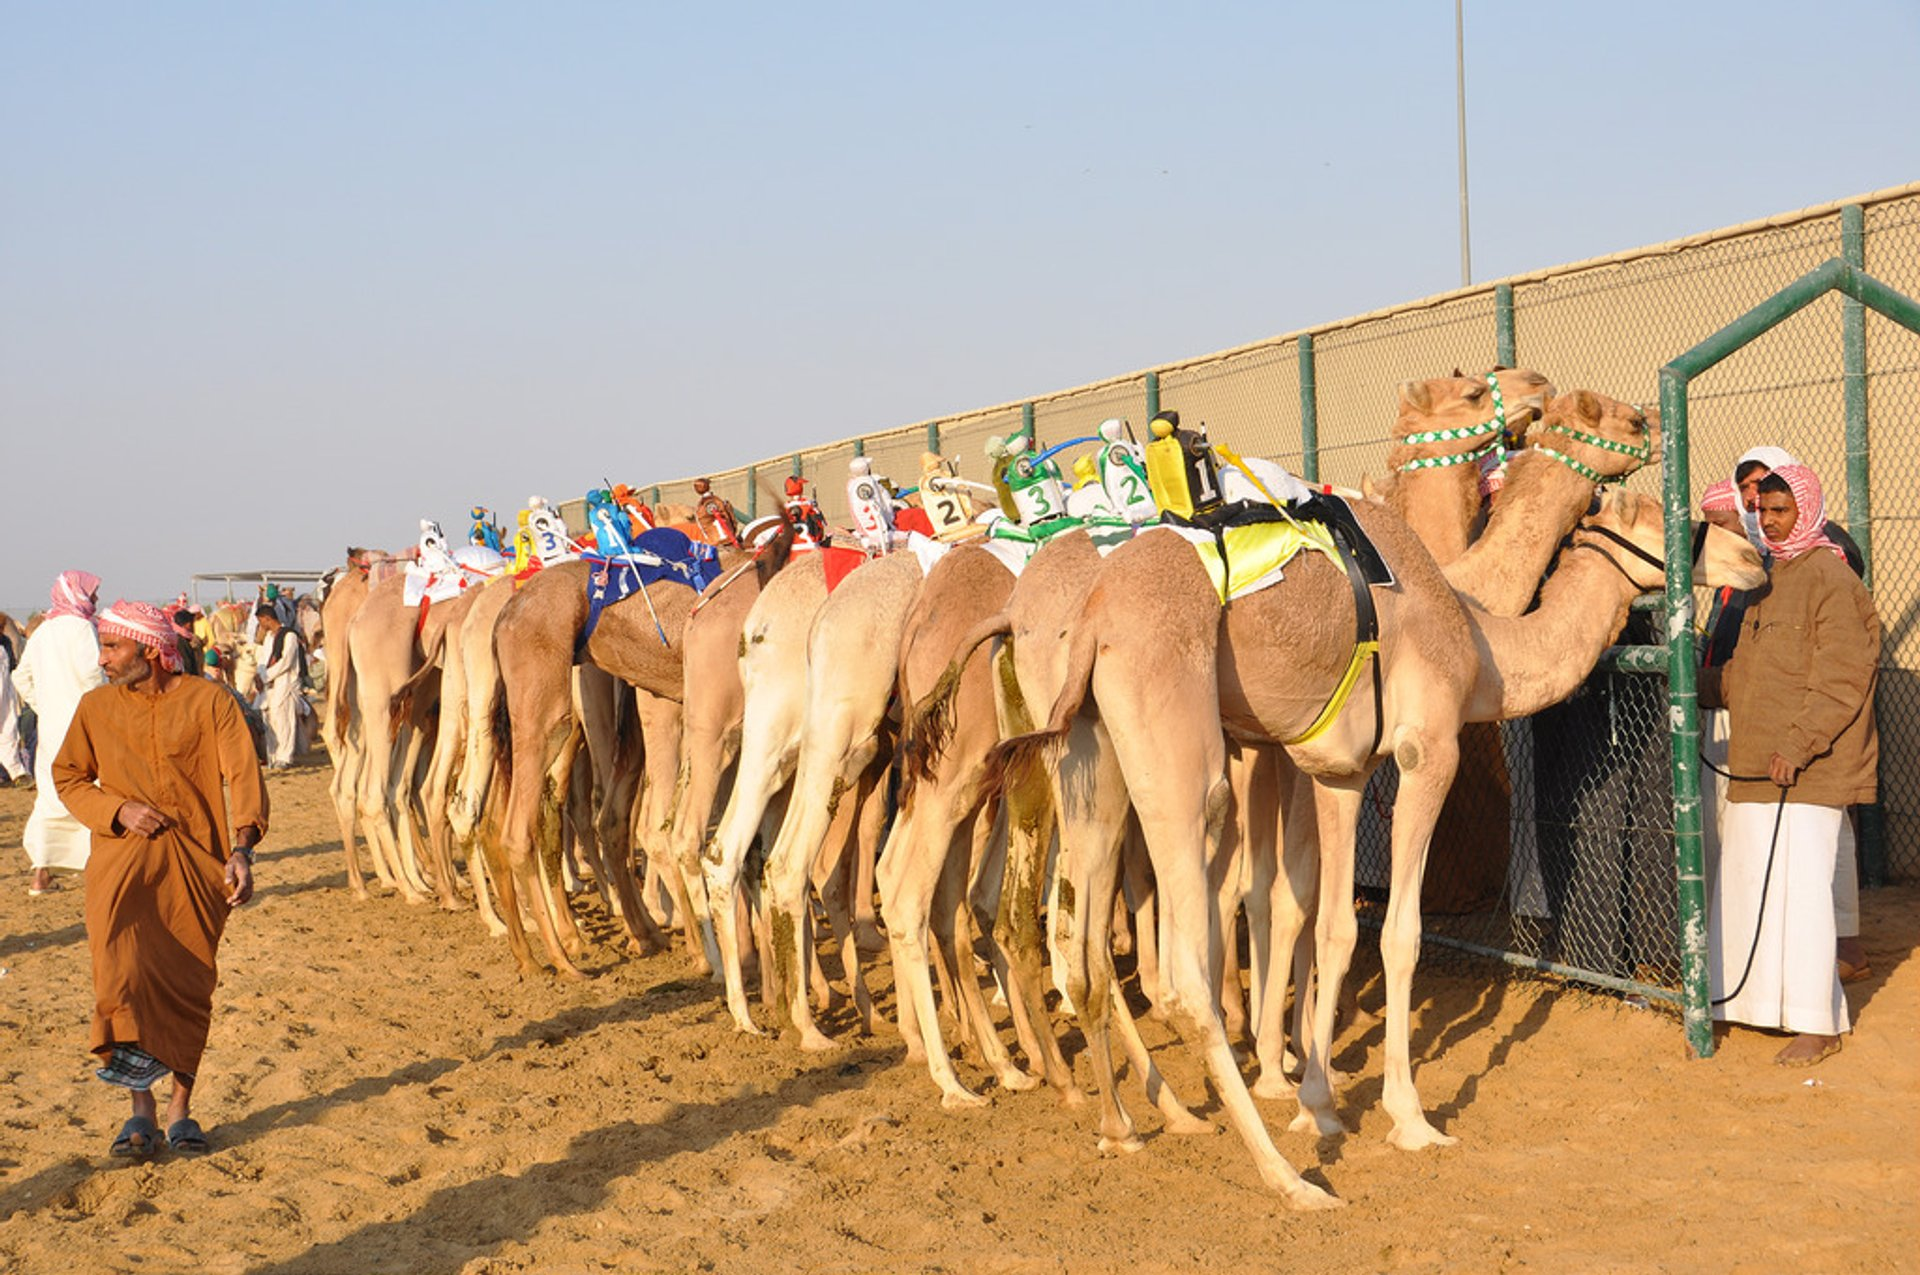 Best time to see Camel Racing Season in Dubai 2019